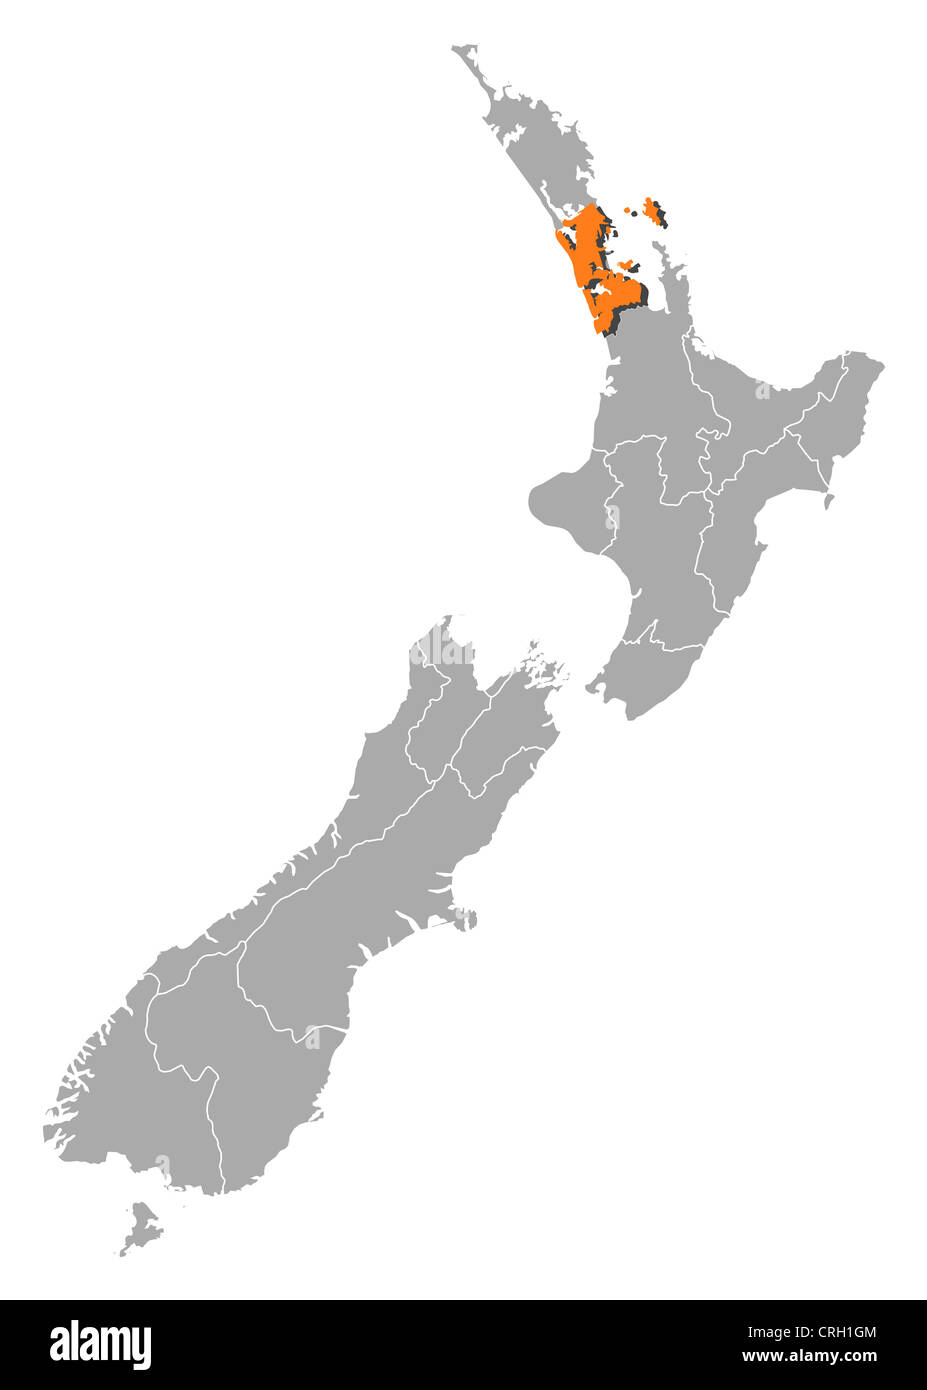 New Zealand Regions Map.Political Map Of New Zealand With The Several Regions Where Auckland